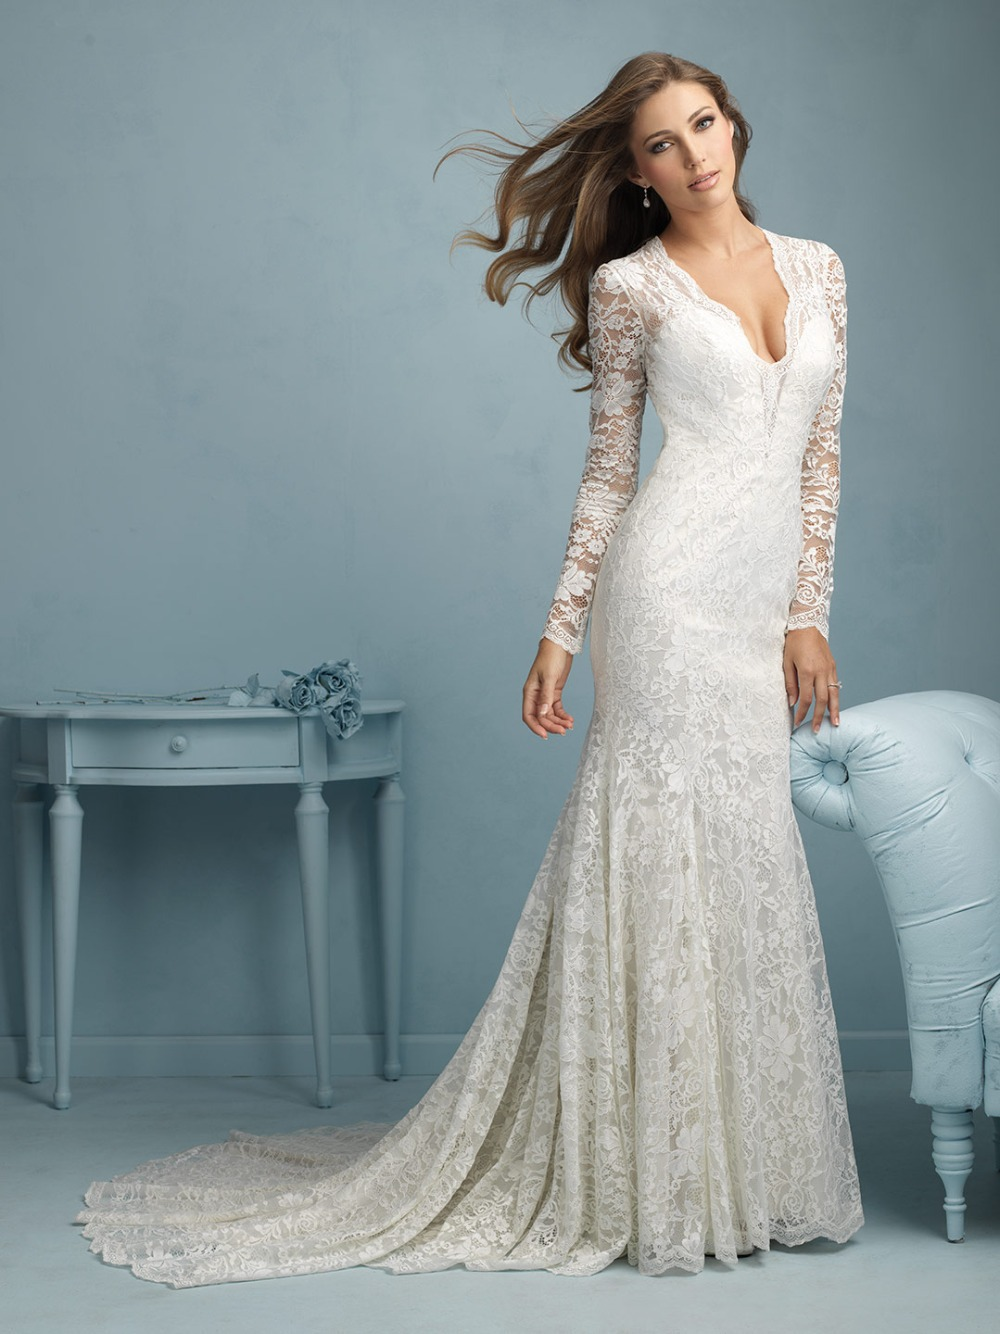 46d53b5e67 Wedding Dress Lace Sleeves V Neck | Saddha